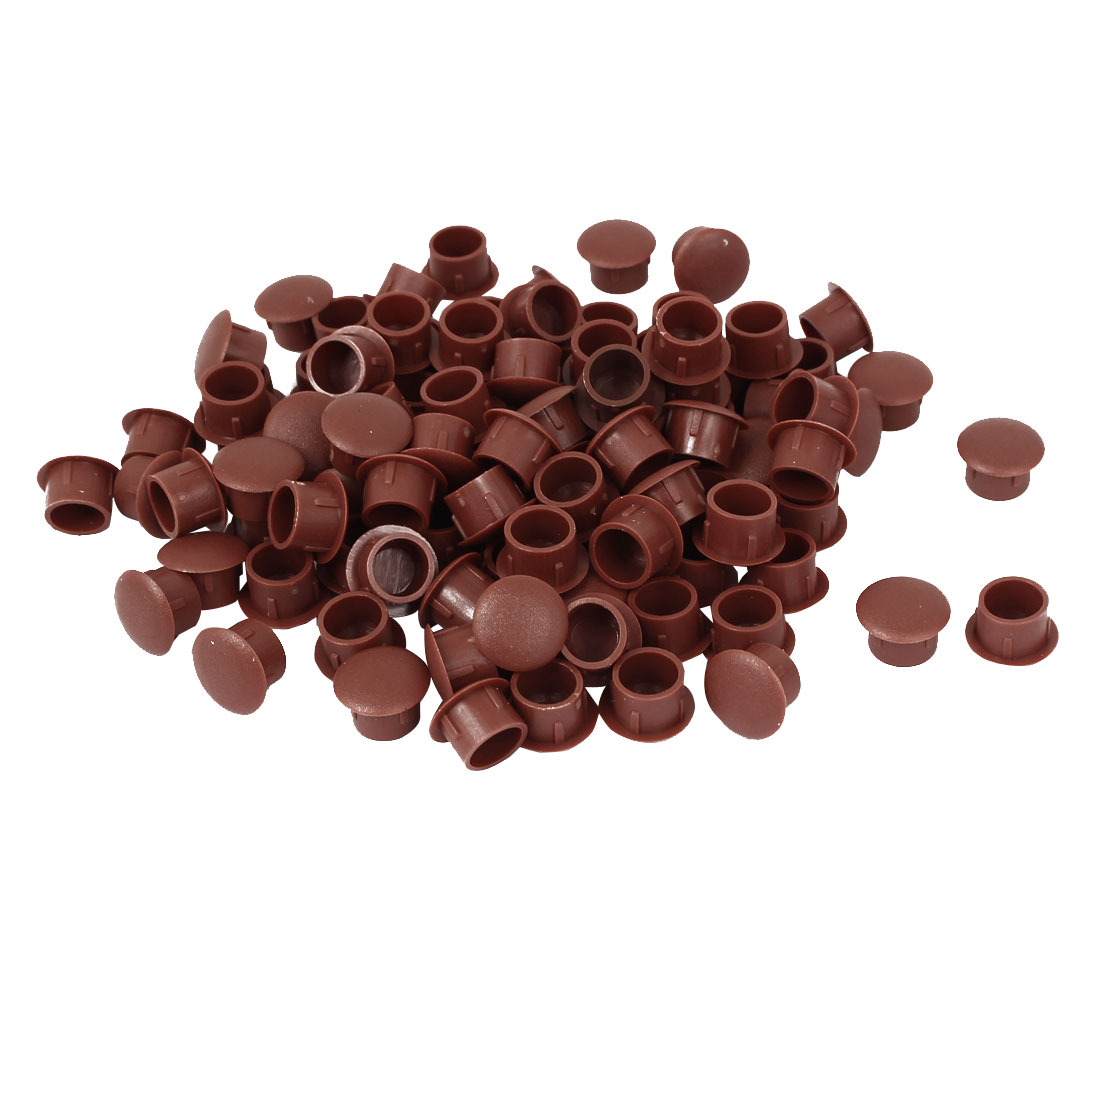 10mm Diameter Hole Brown Plastic Push in Furniture Screw Cap Covers 100 Pcs